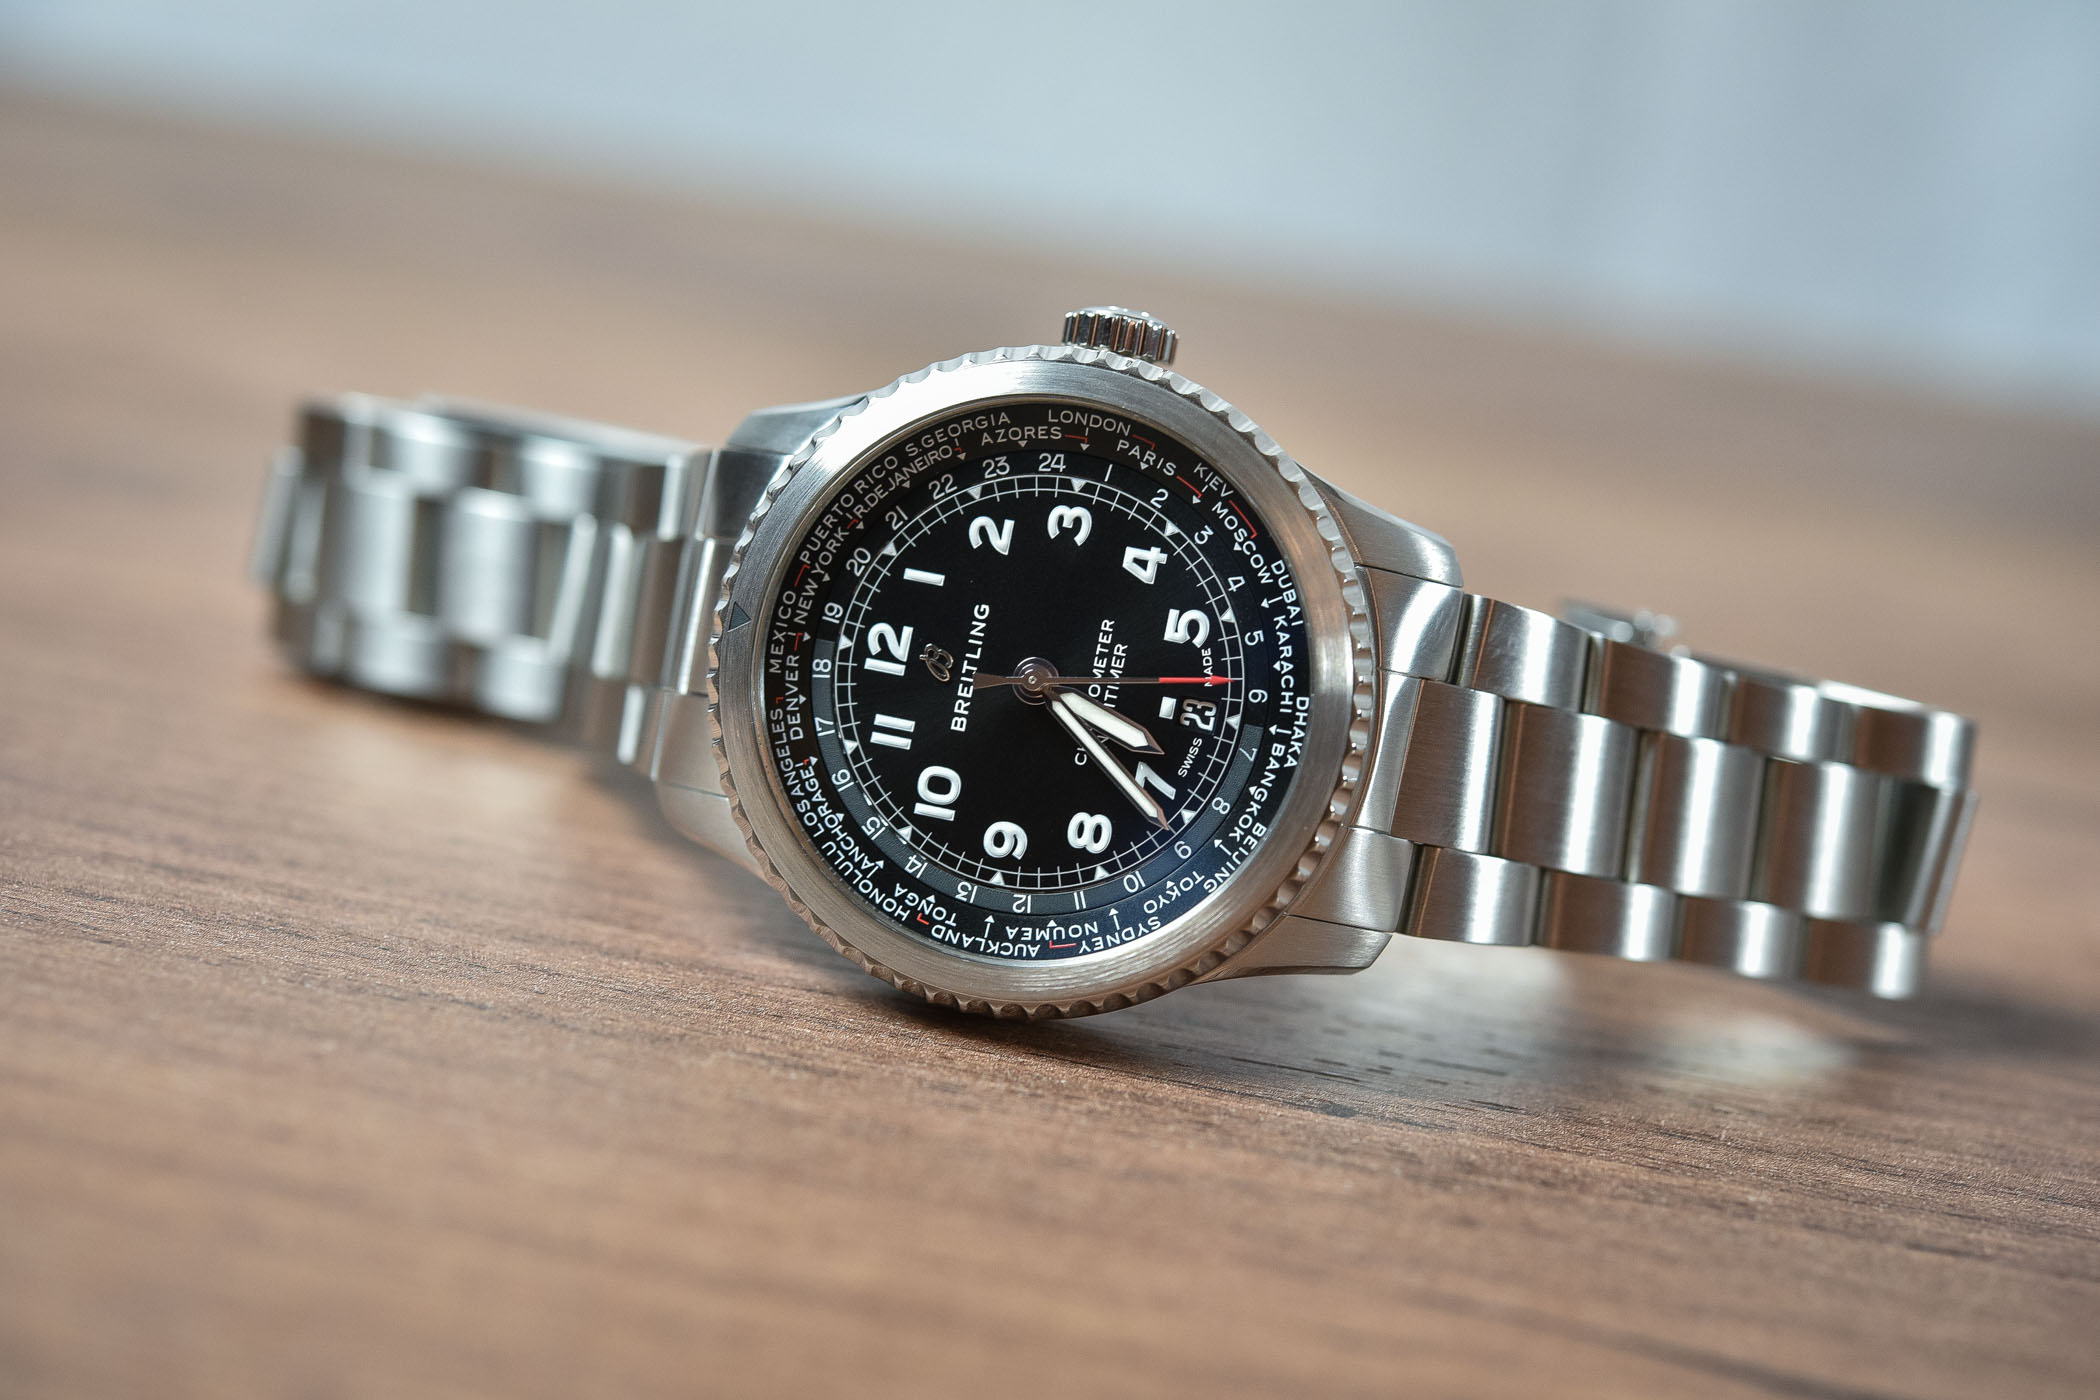 Best GMT Travellers watches Baselworld 2018 - Breitling Navitimer 8 B35 Automatic Unitime 43